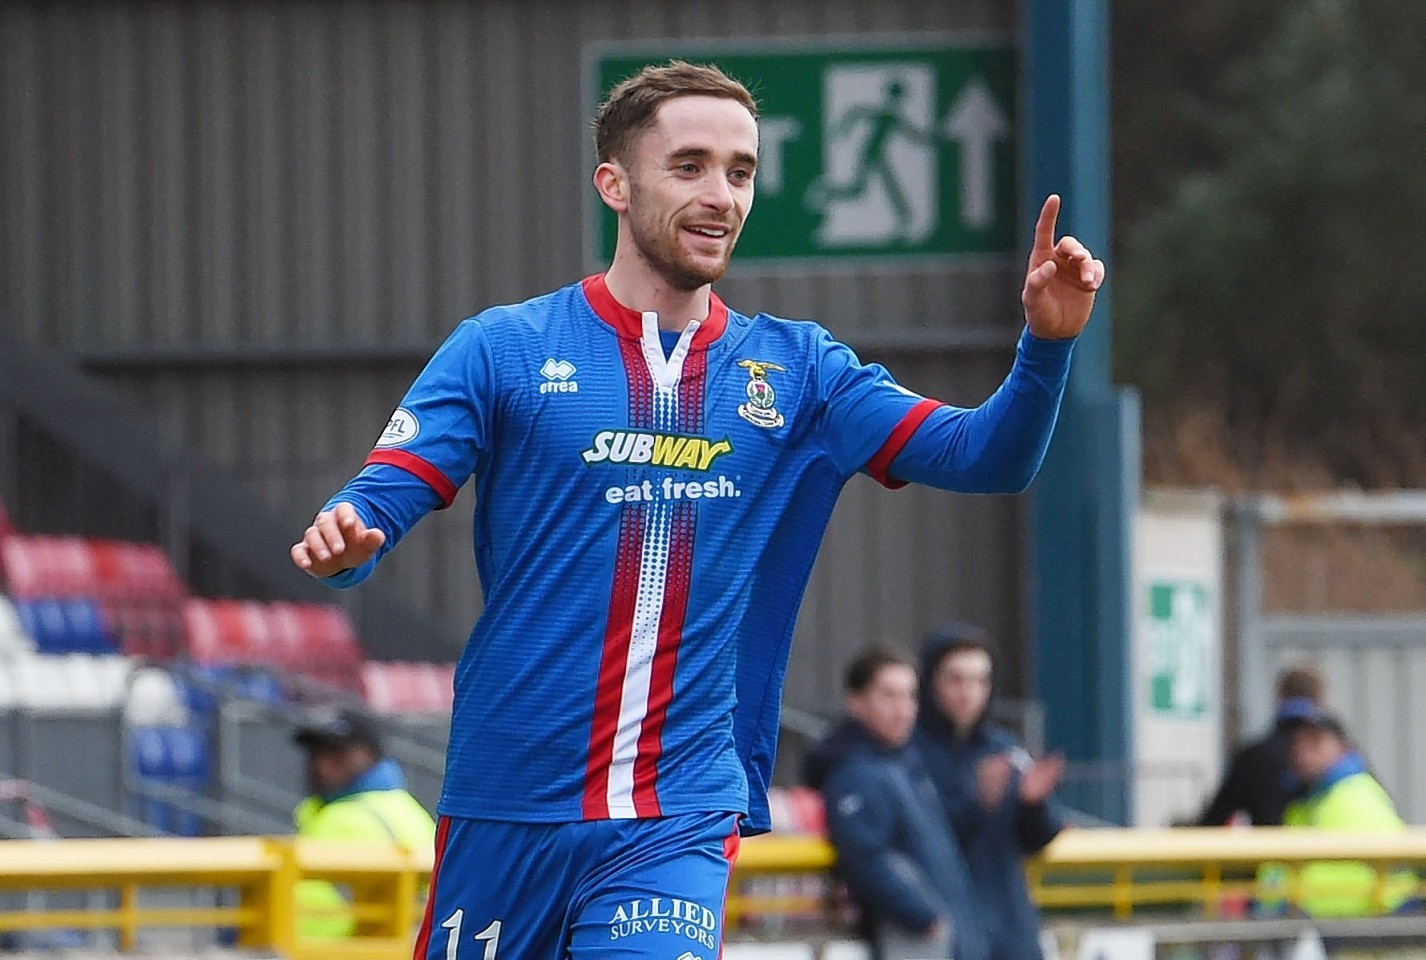 Former Caley Thistle midfielder Nick Ross